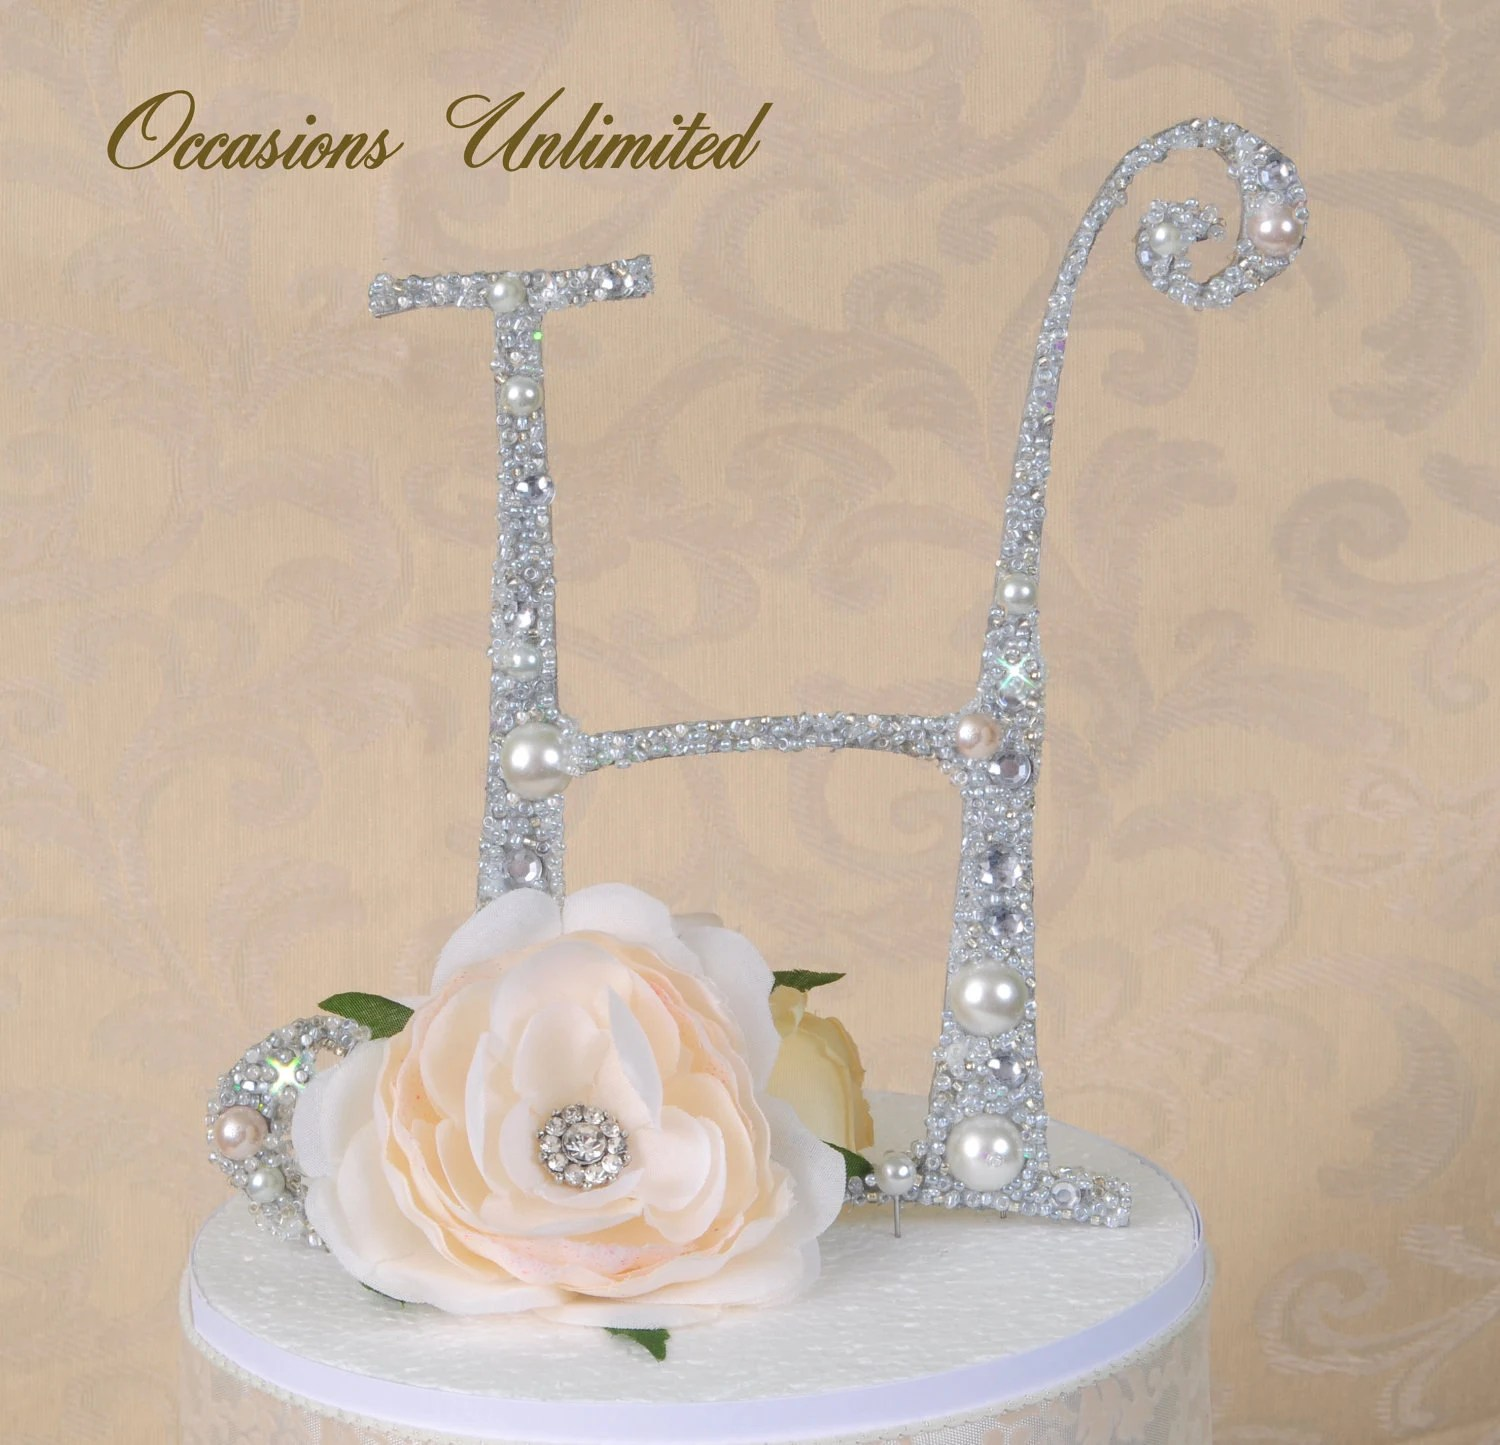 Cake Topper - Cake Top Bling Wedding Monogram pearls and crystals